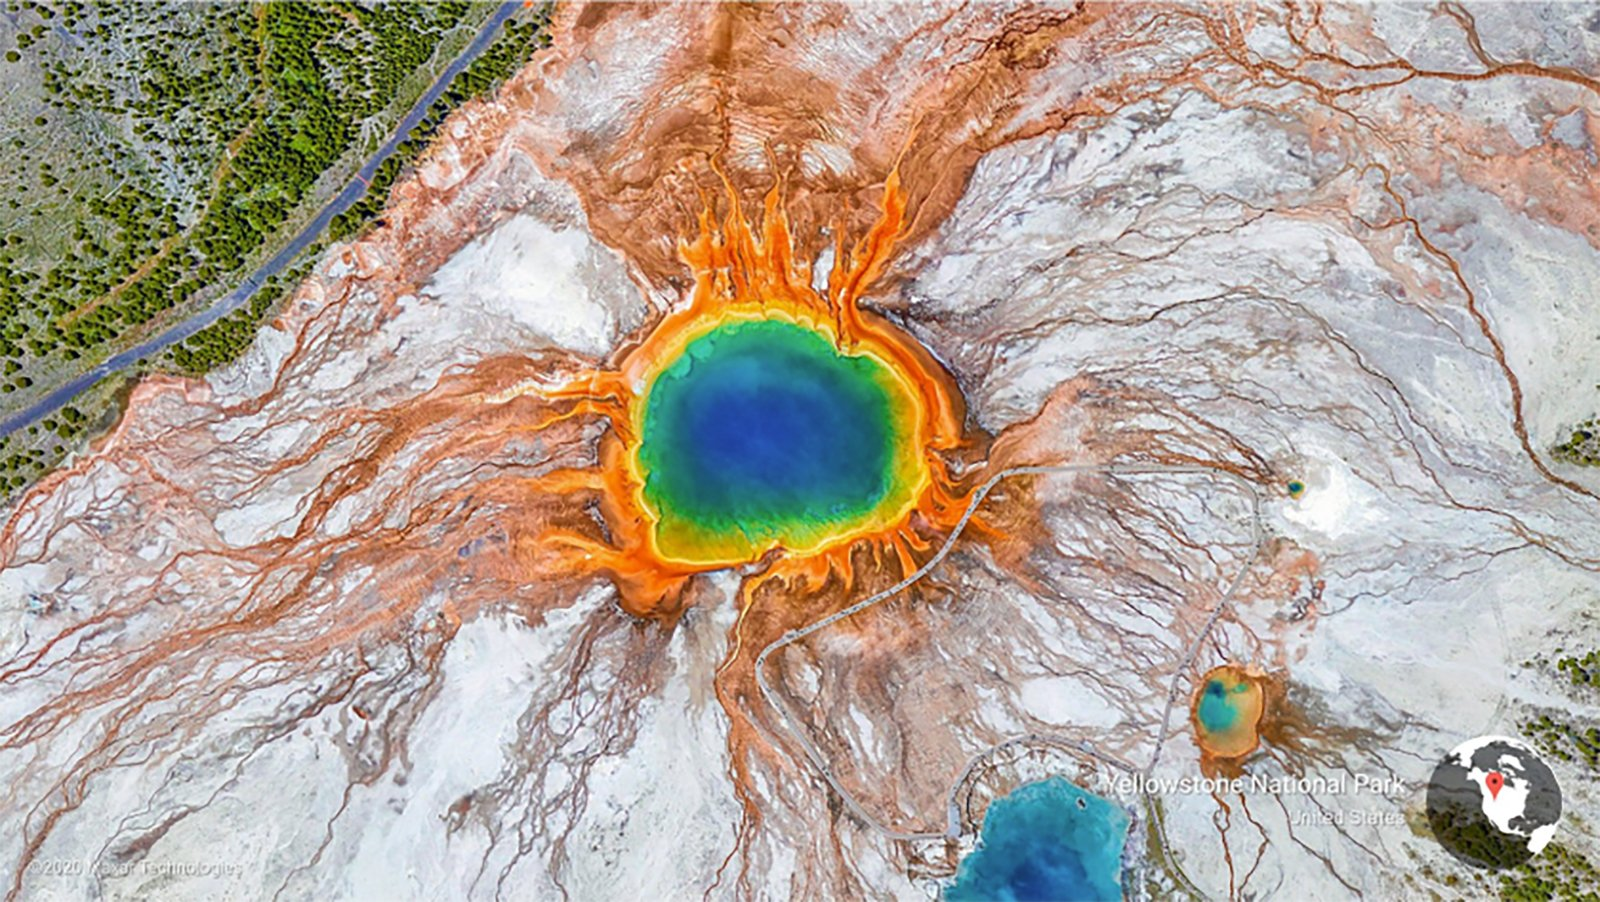 A Google Earth View of a landscape in Yellowstone National Park. (Credit: Maxar Technologies/Google)